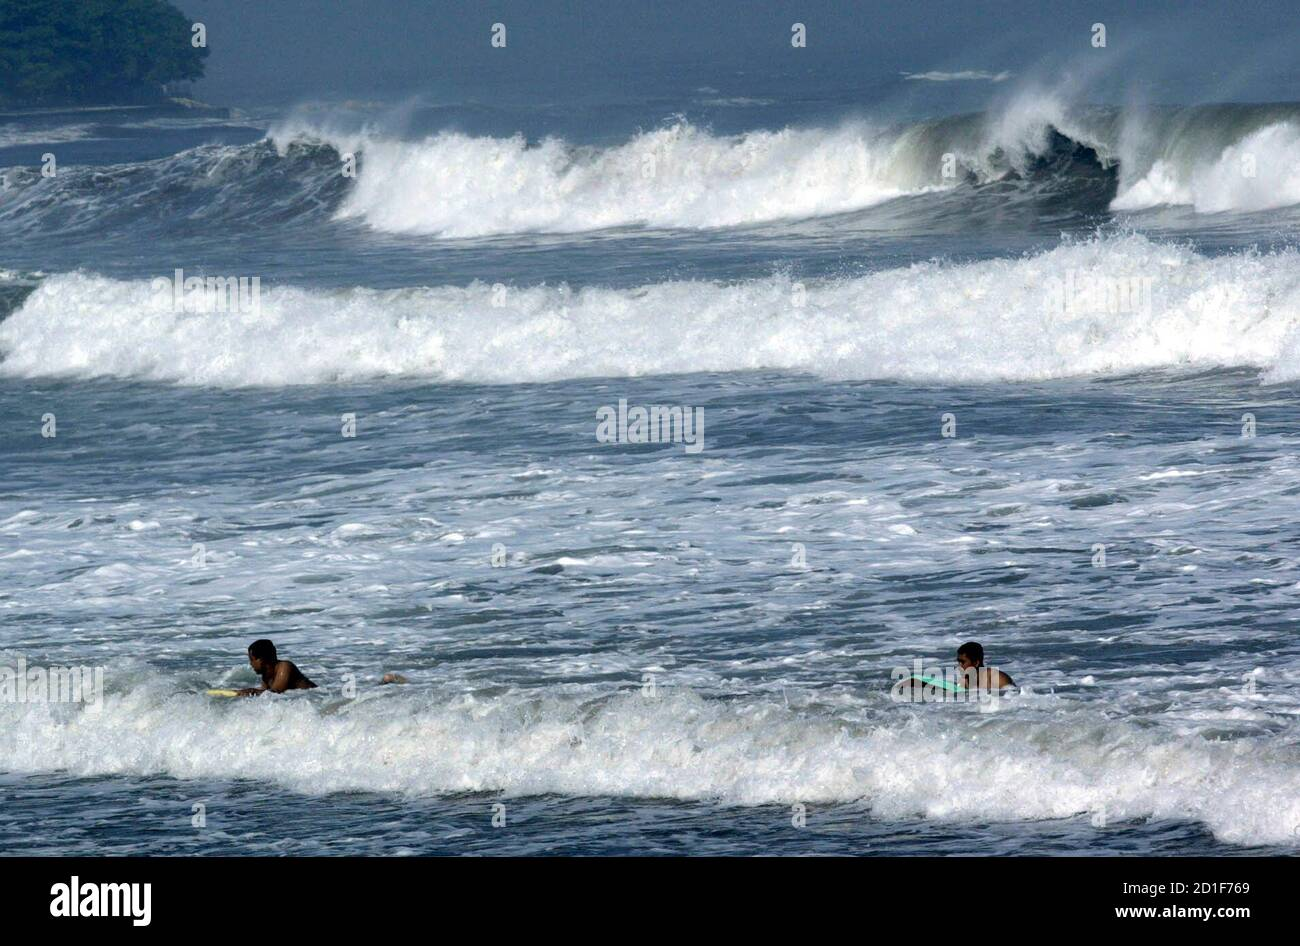 Surfers play on the high waves in Kuta beach in Bali island May 19, 2007. Massive waves have hit coastlines across Indonesia, sending hundreds of panicky residents rushing from their homes and also destroying fishing boats and beachside shacks, officials and media reports said on Friday.  REUTERS/Murdani Usman  (INDONESIA) Stock Photo